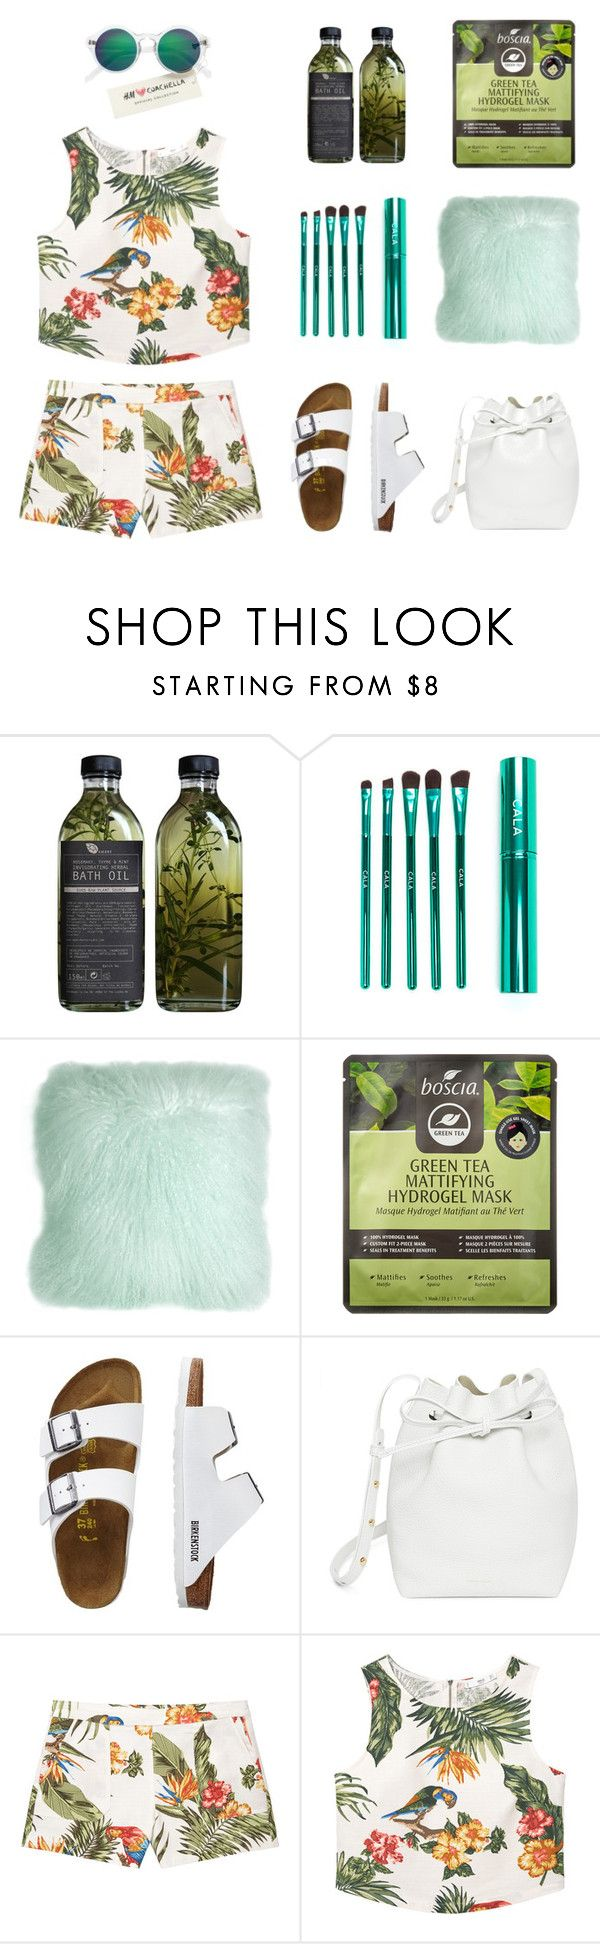 """""""natural tropical day 🍹 welcome 🍹 in Brasil 🍲"""" by jasmimestefany ❤ liked on Polyvore featuring AMBRE, Pillow Decor, Boscia, TravelSmith, Mansur Gavriel, MANGO and H&M"""